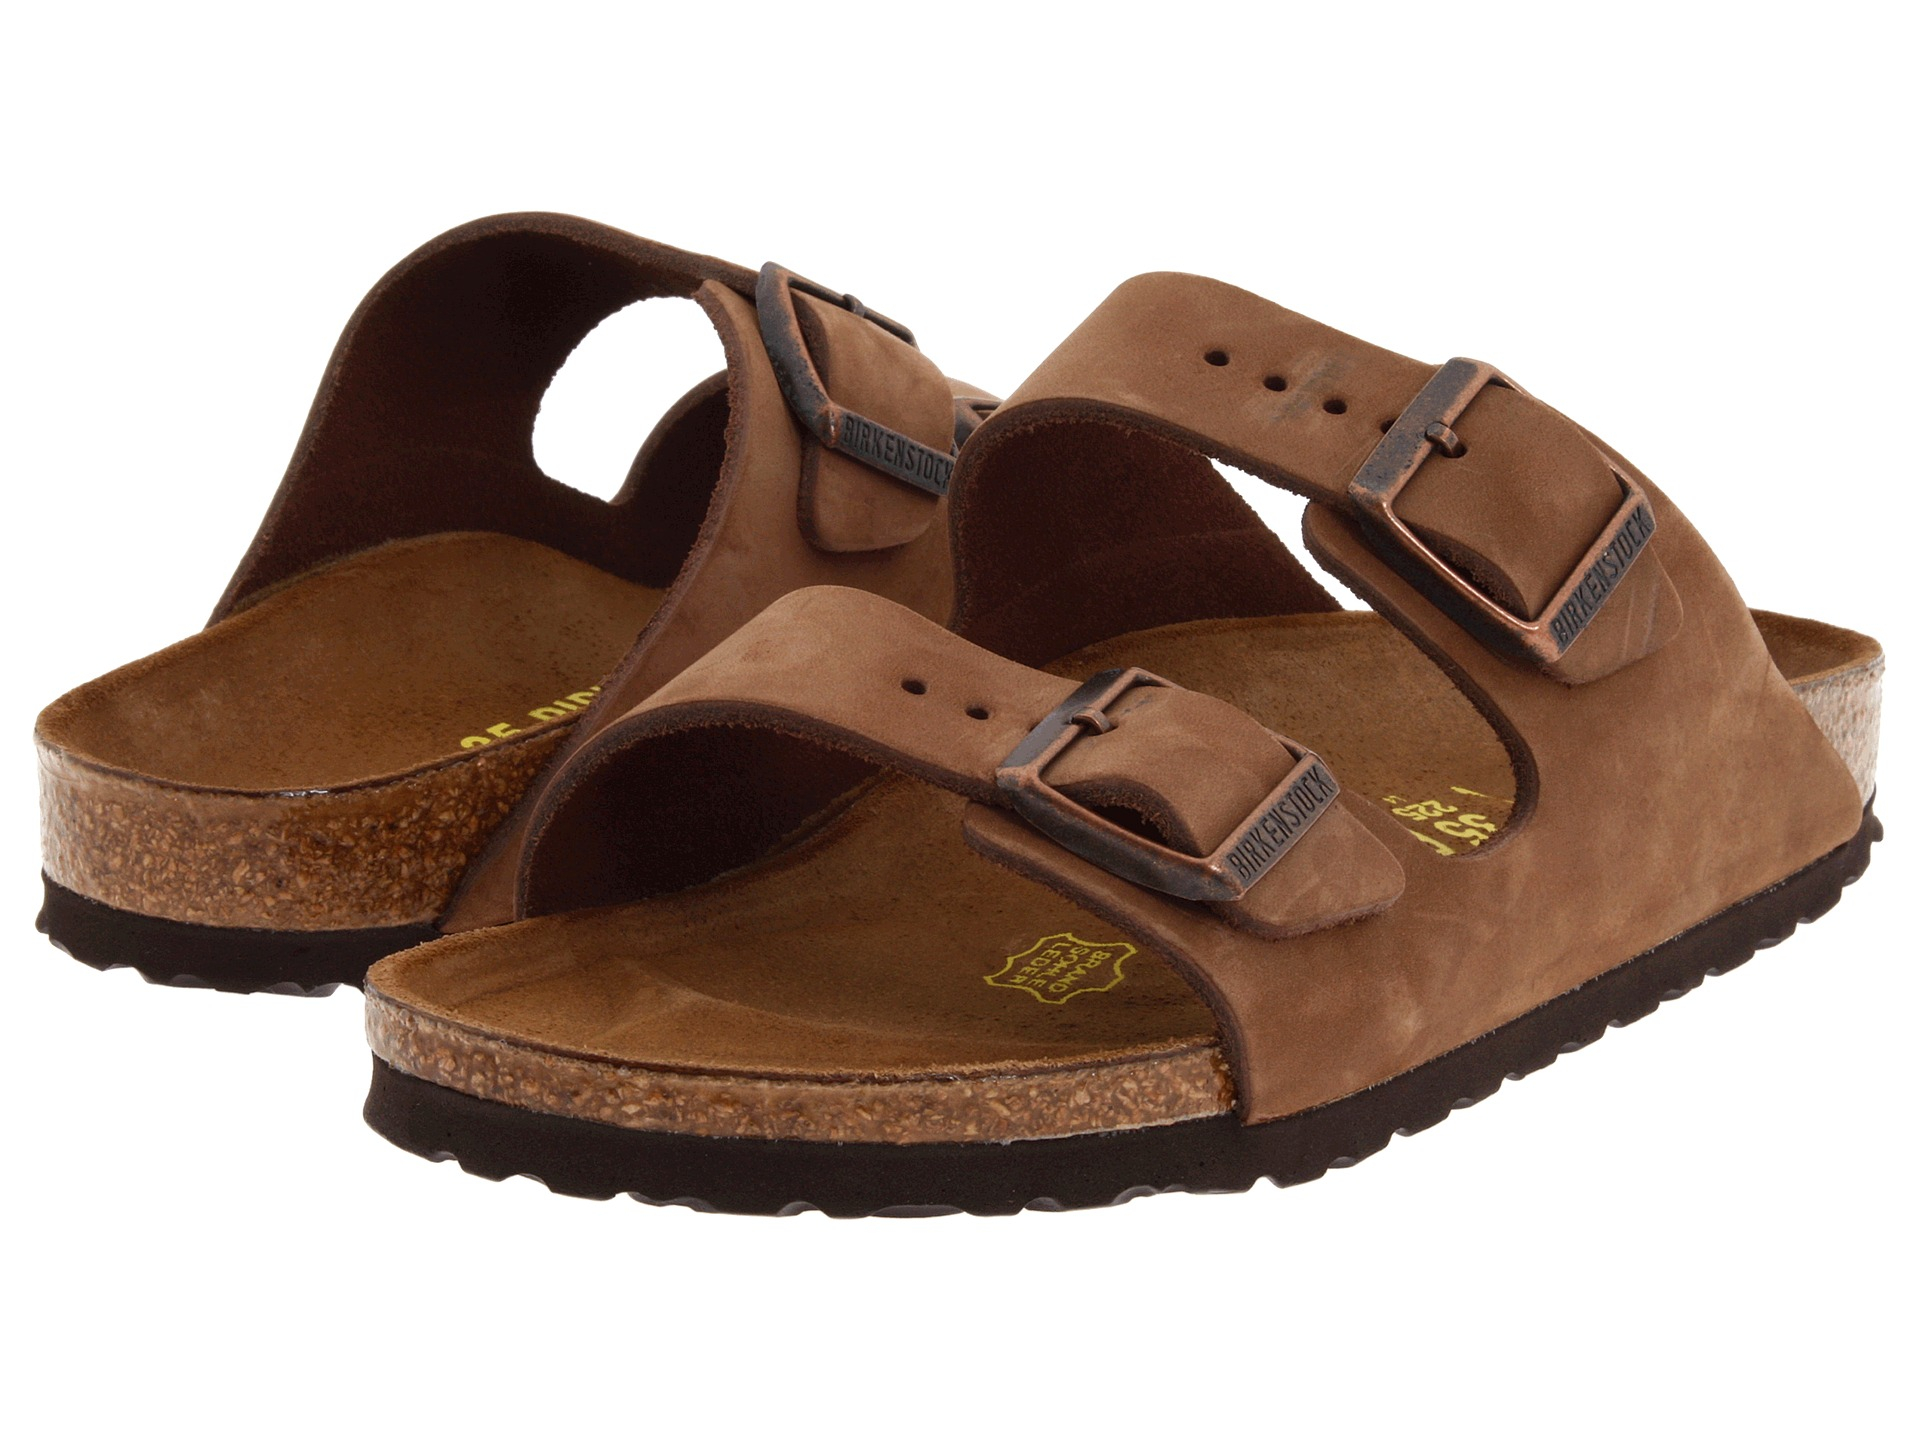 65d78761237e Lyst - Birkenstock Arizona - Nubuck (unisex) in Brown